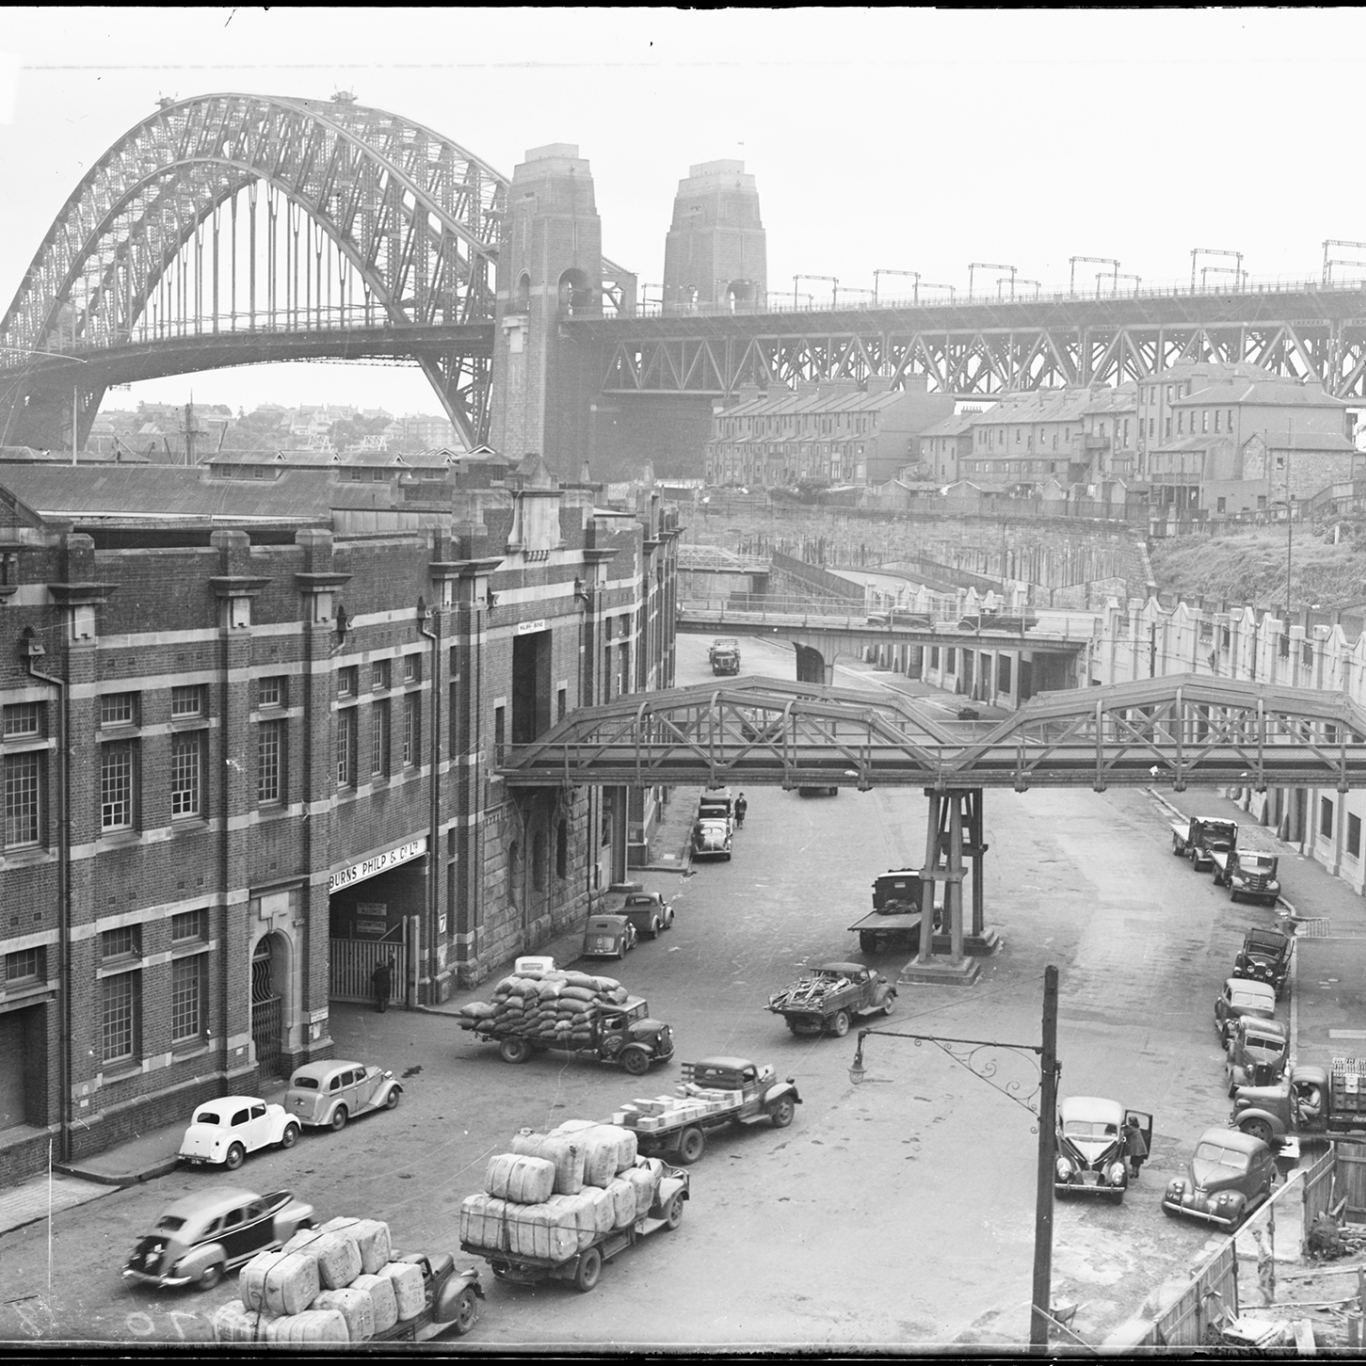 Black and white photograph looking along curved city street with Sydney Harbour Bridge in background.